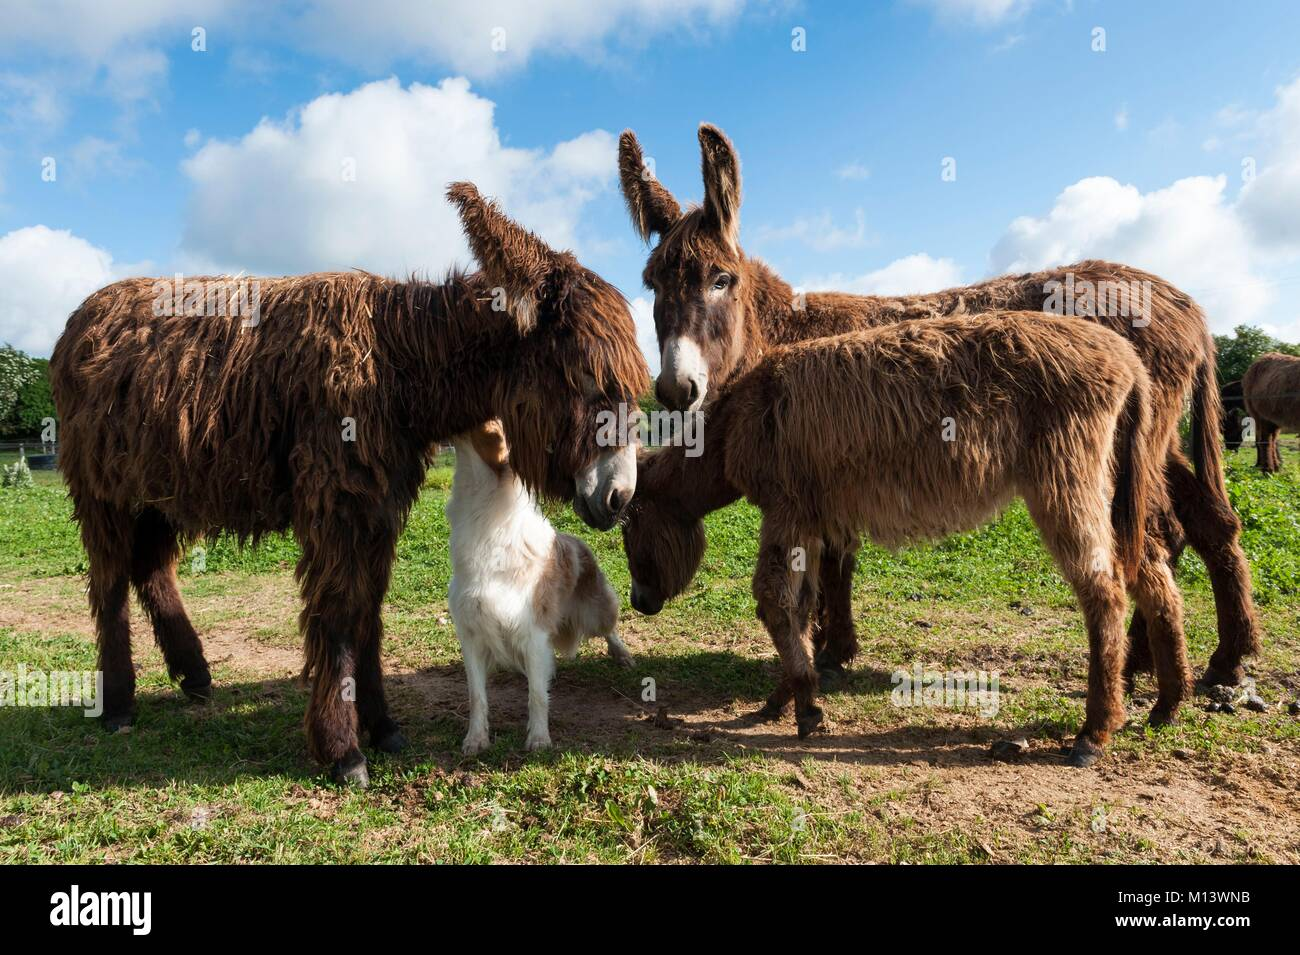 France, Deux Sevres, Saint Georges de Rex, rooster farm with donkey, Poitou donkeys in the Marais Poitevin, Venise - Stock Image